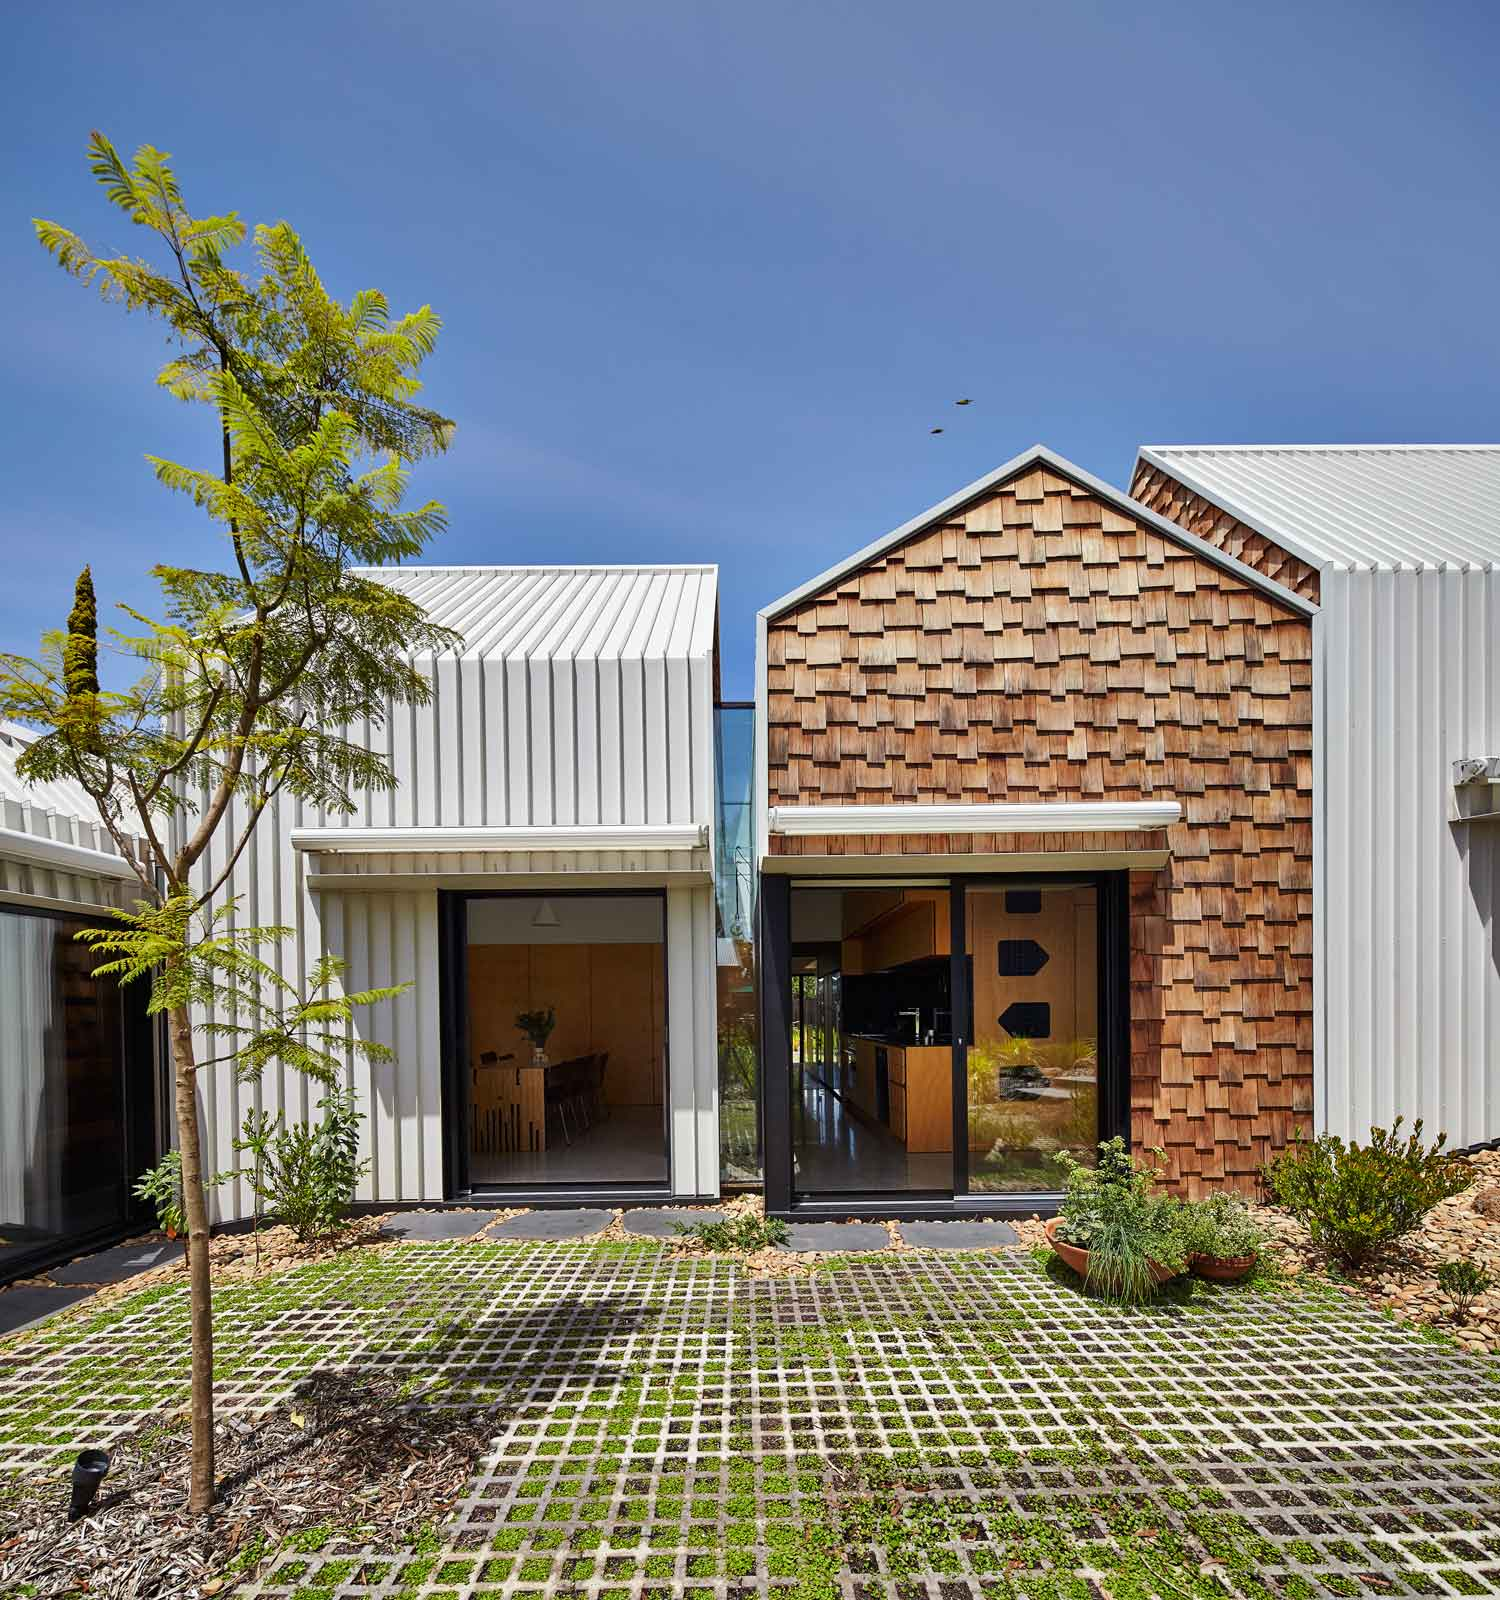 Small Modern House In Australia: Tower House By Andrew Maynard Architects